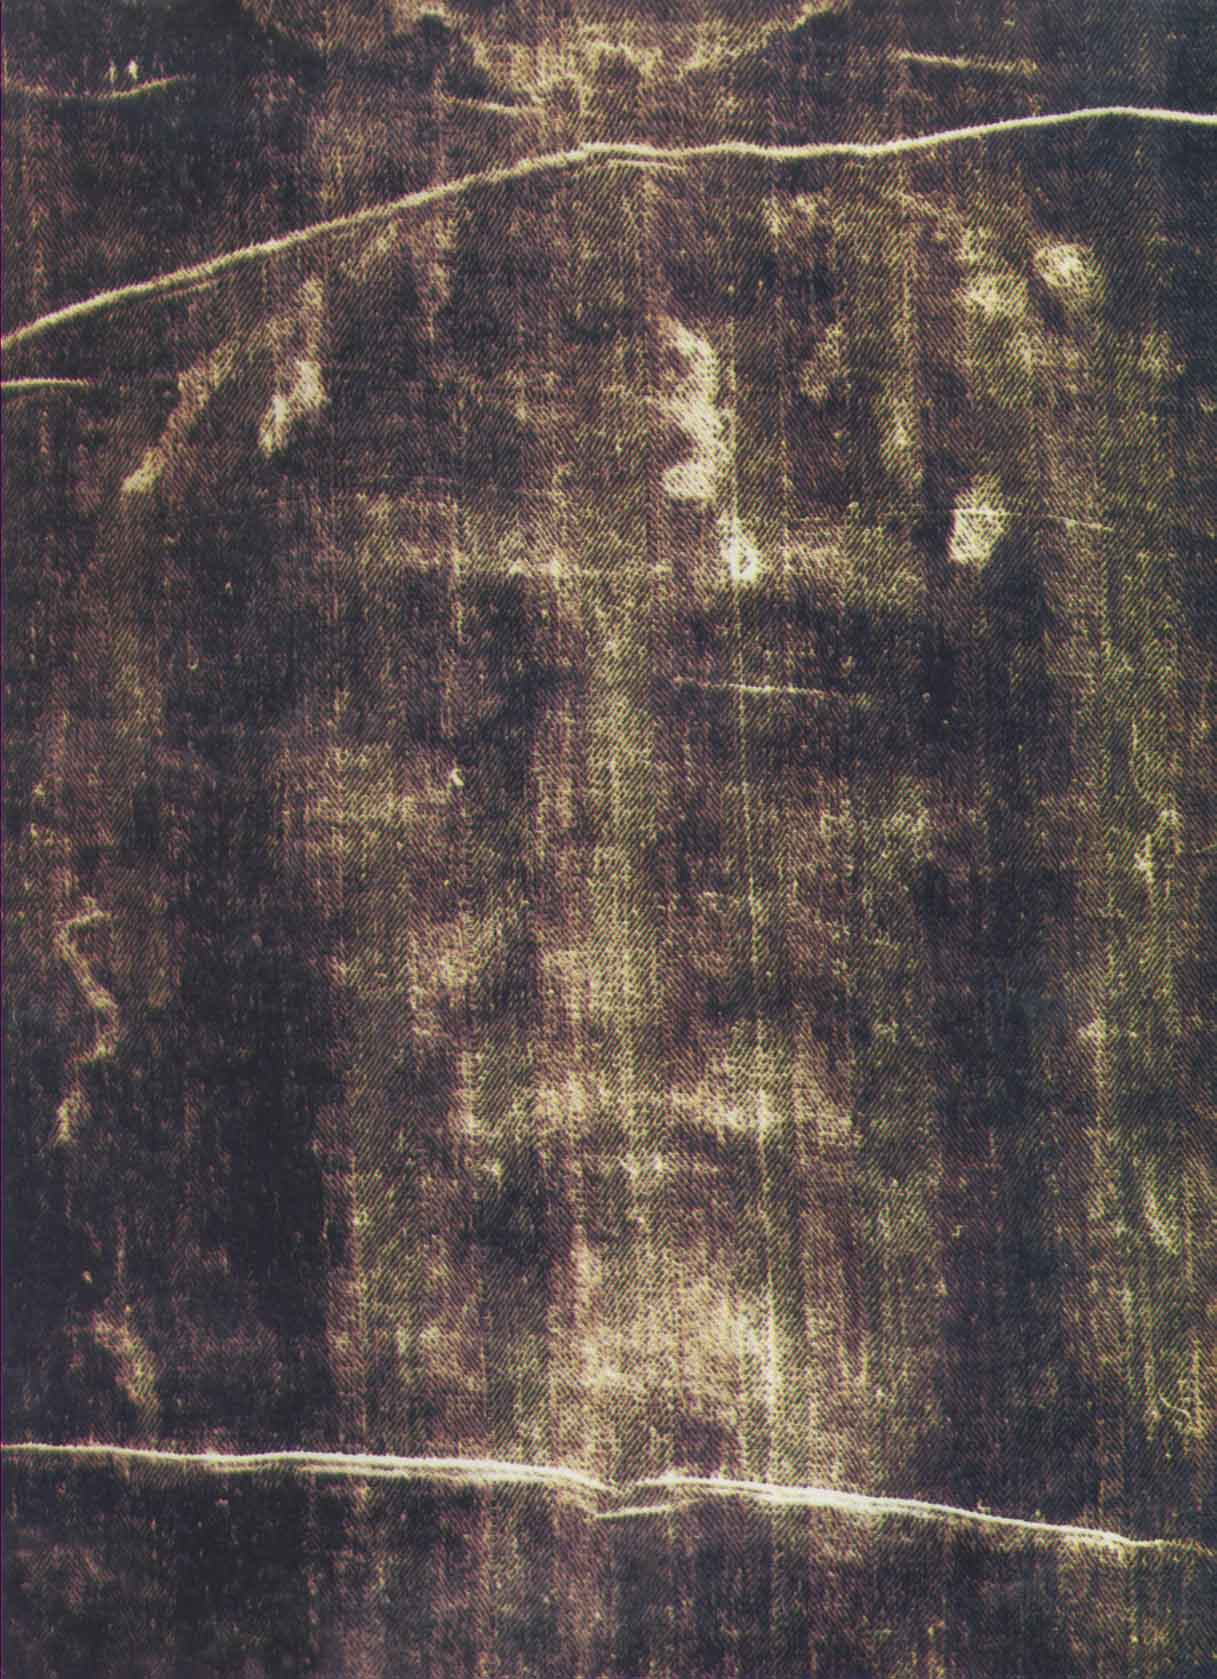 Shroud of turin carbon dating wrong girl 8